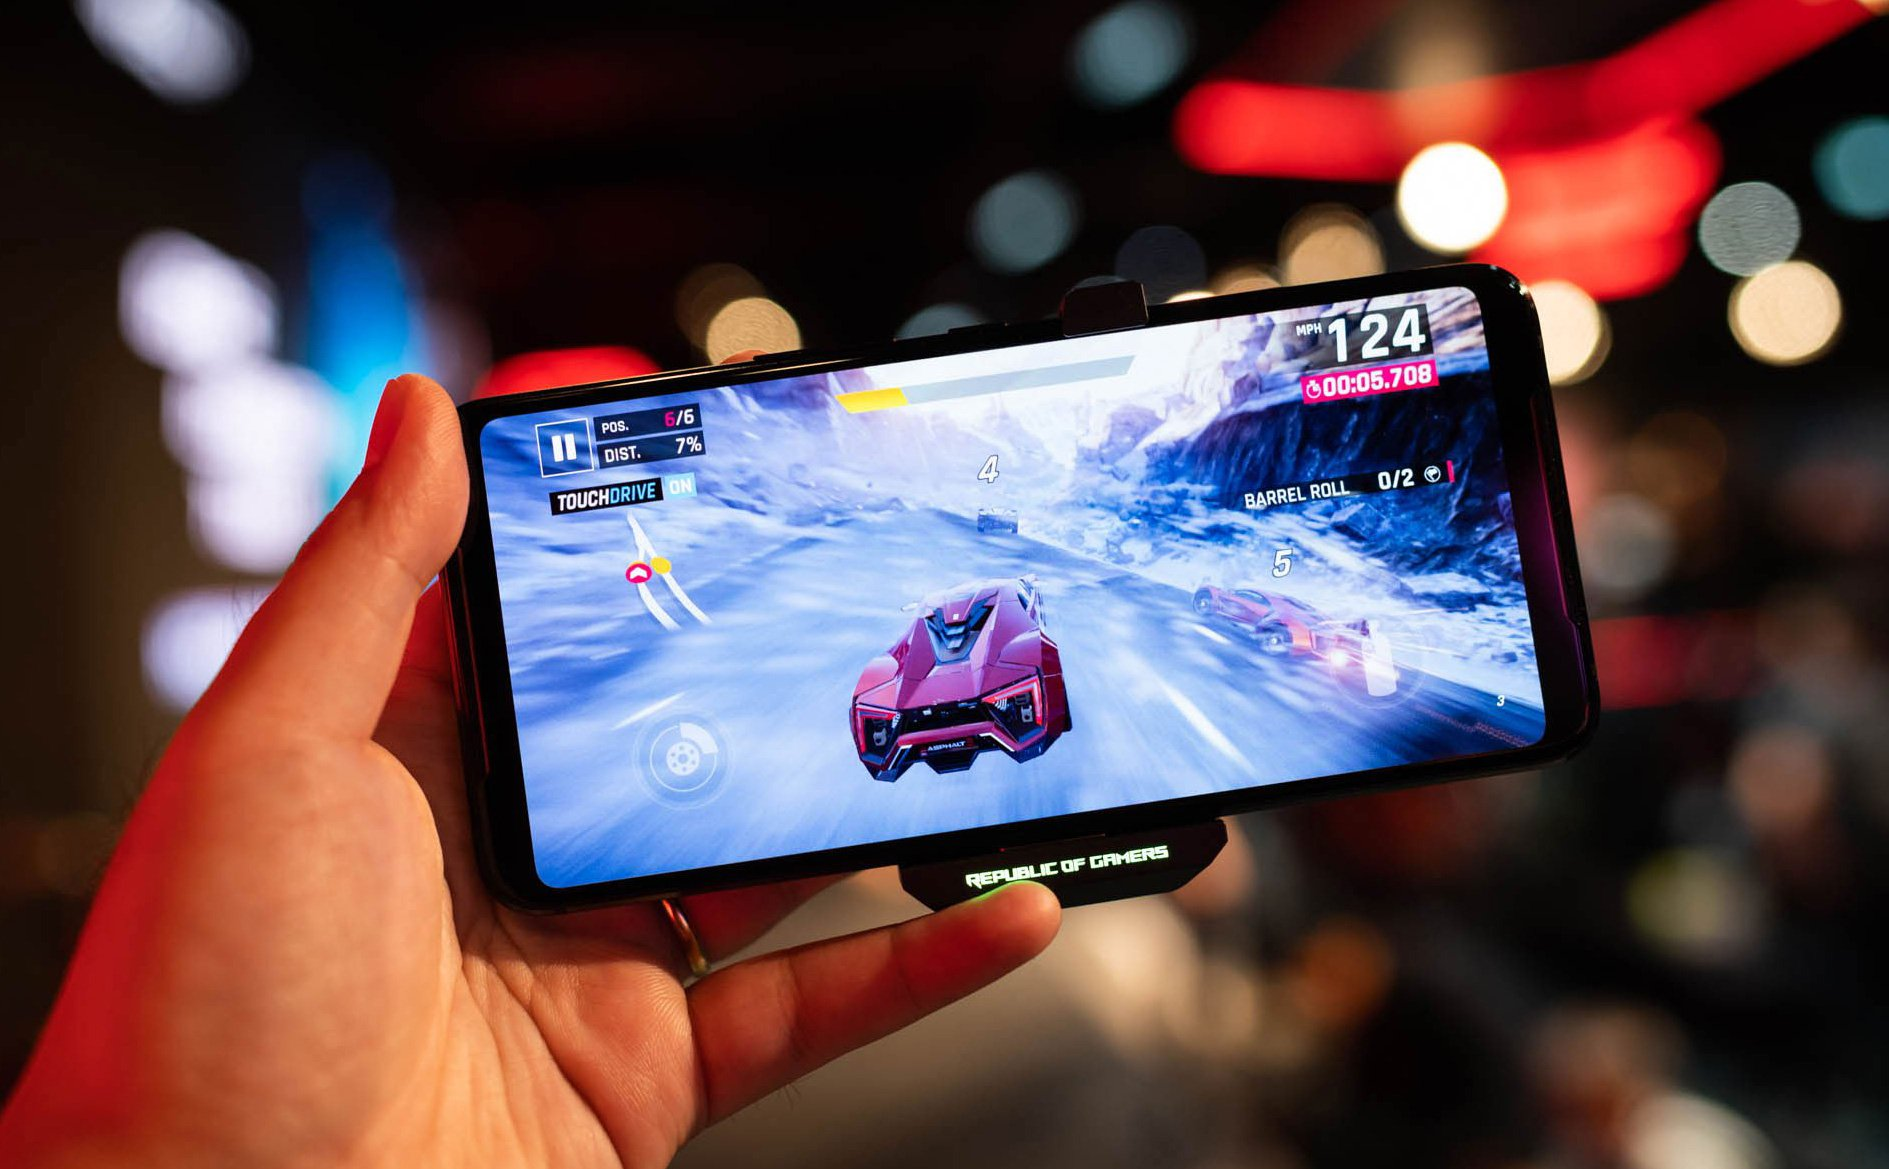 List of Android games that support 120Hz screens